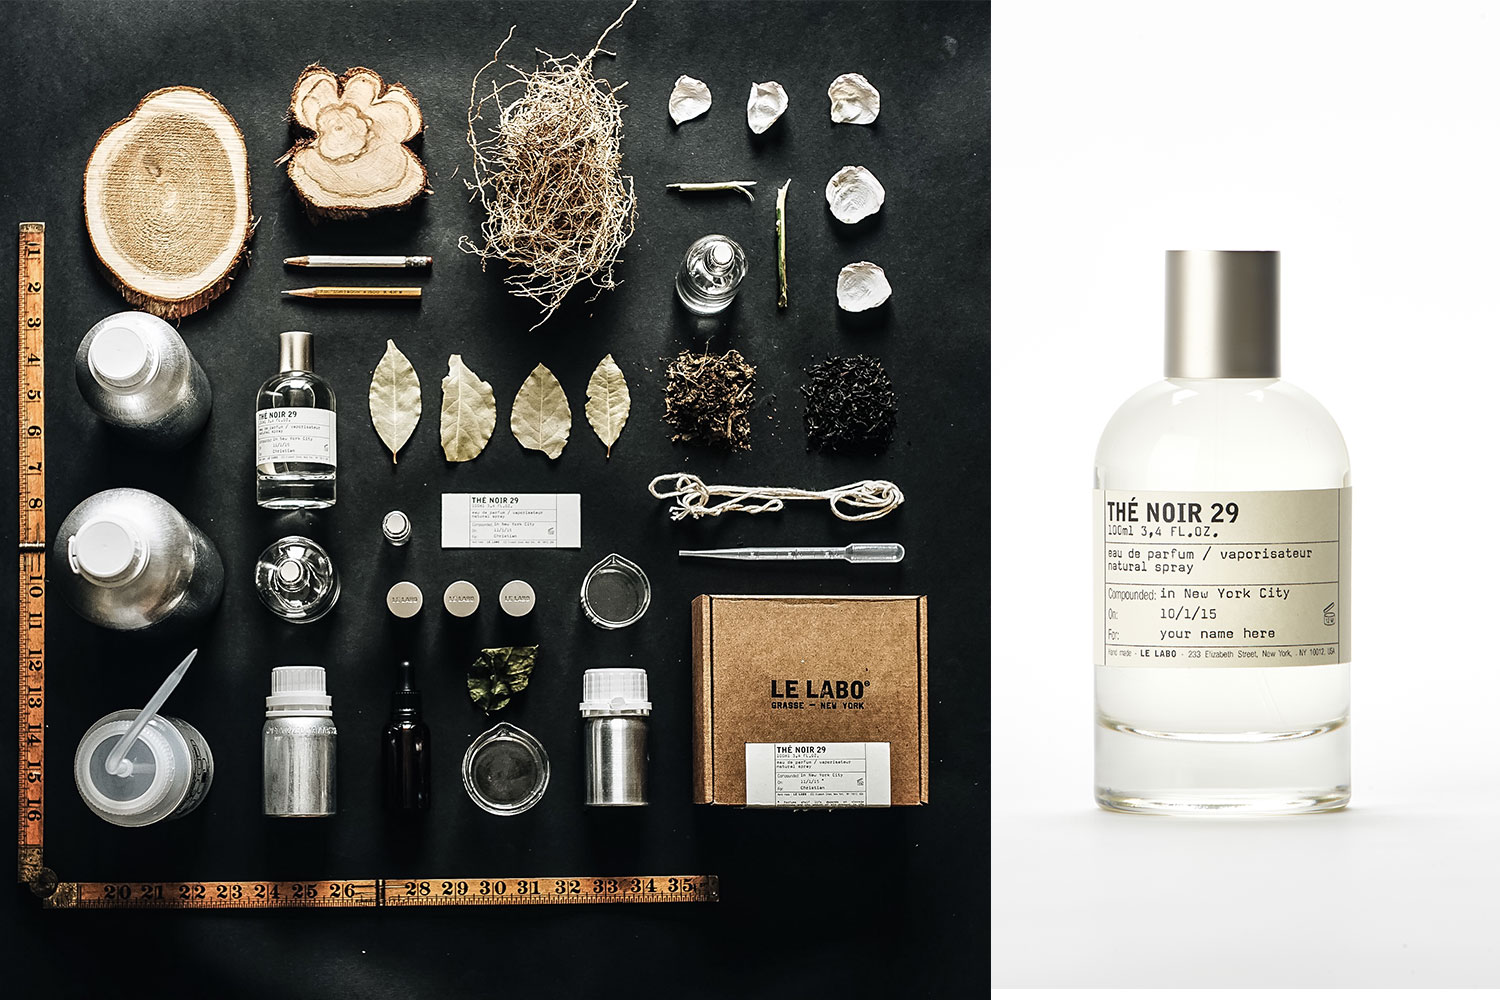 LE LABO   We believe that there are too many bottles of perfume and not enough soulful fragrances. We believe the soul of a fragrance comes from the intention with which it is created and the attention with which it is prepared. We believe fine perfumery must create a shock - the shock of the new, combined with the shock of the intimately familiar. We believe it is more humane to test cosmetics on New Yorkers than on animals.